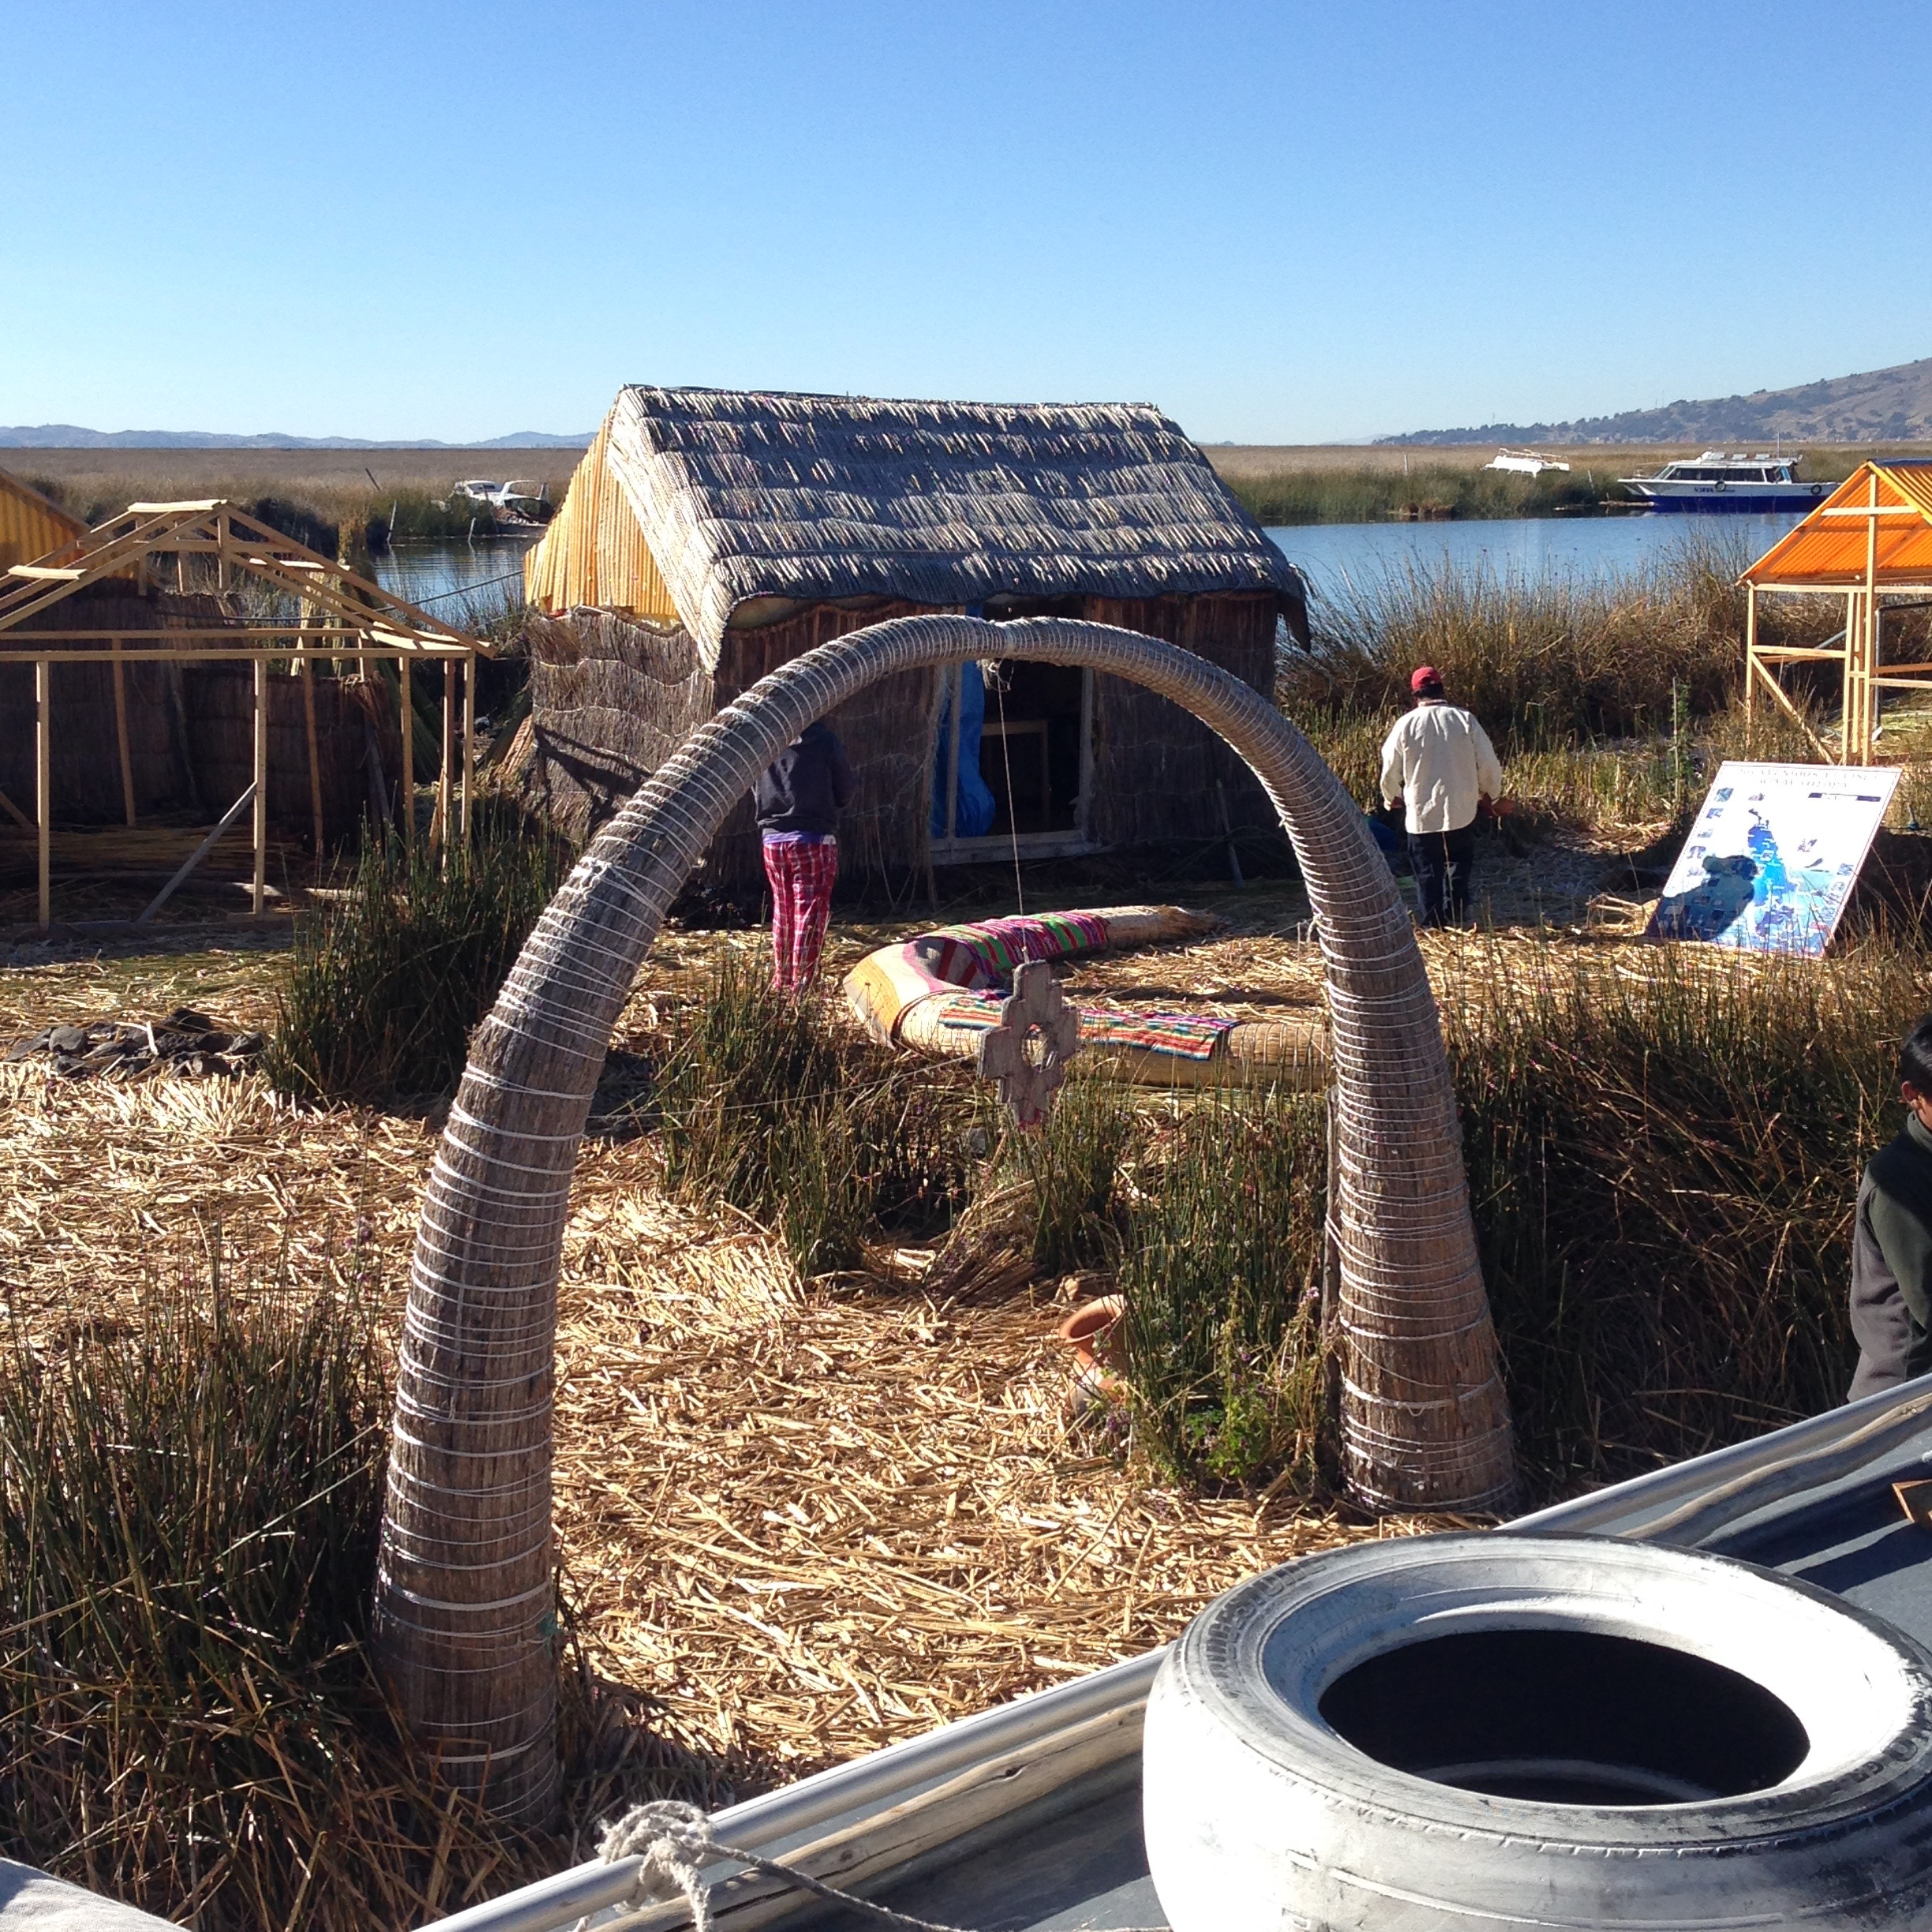 Arriving at one of the Uros islands